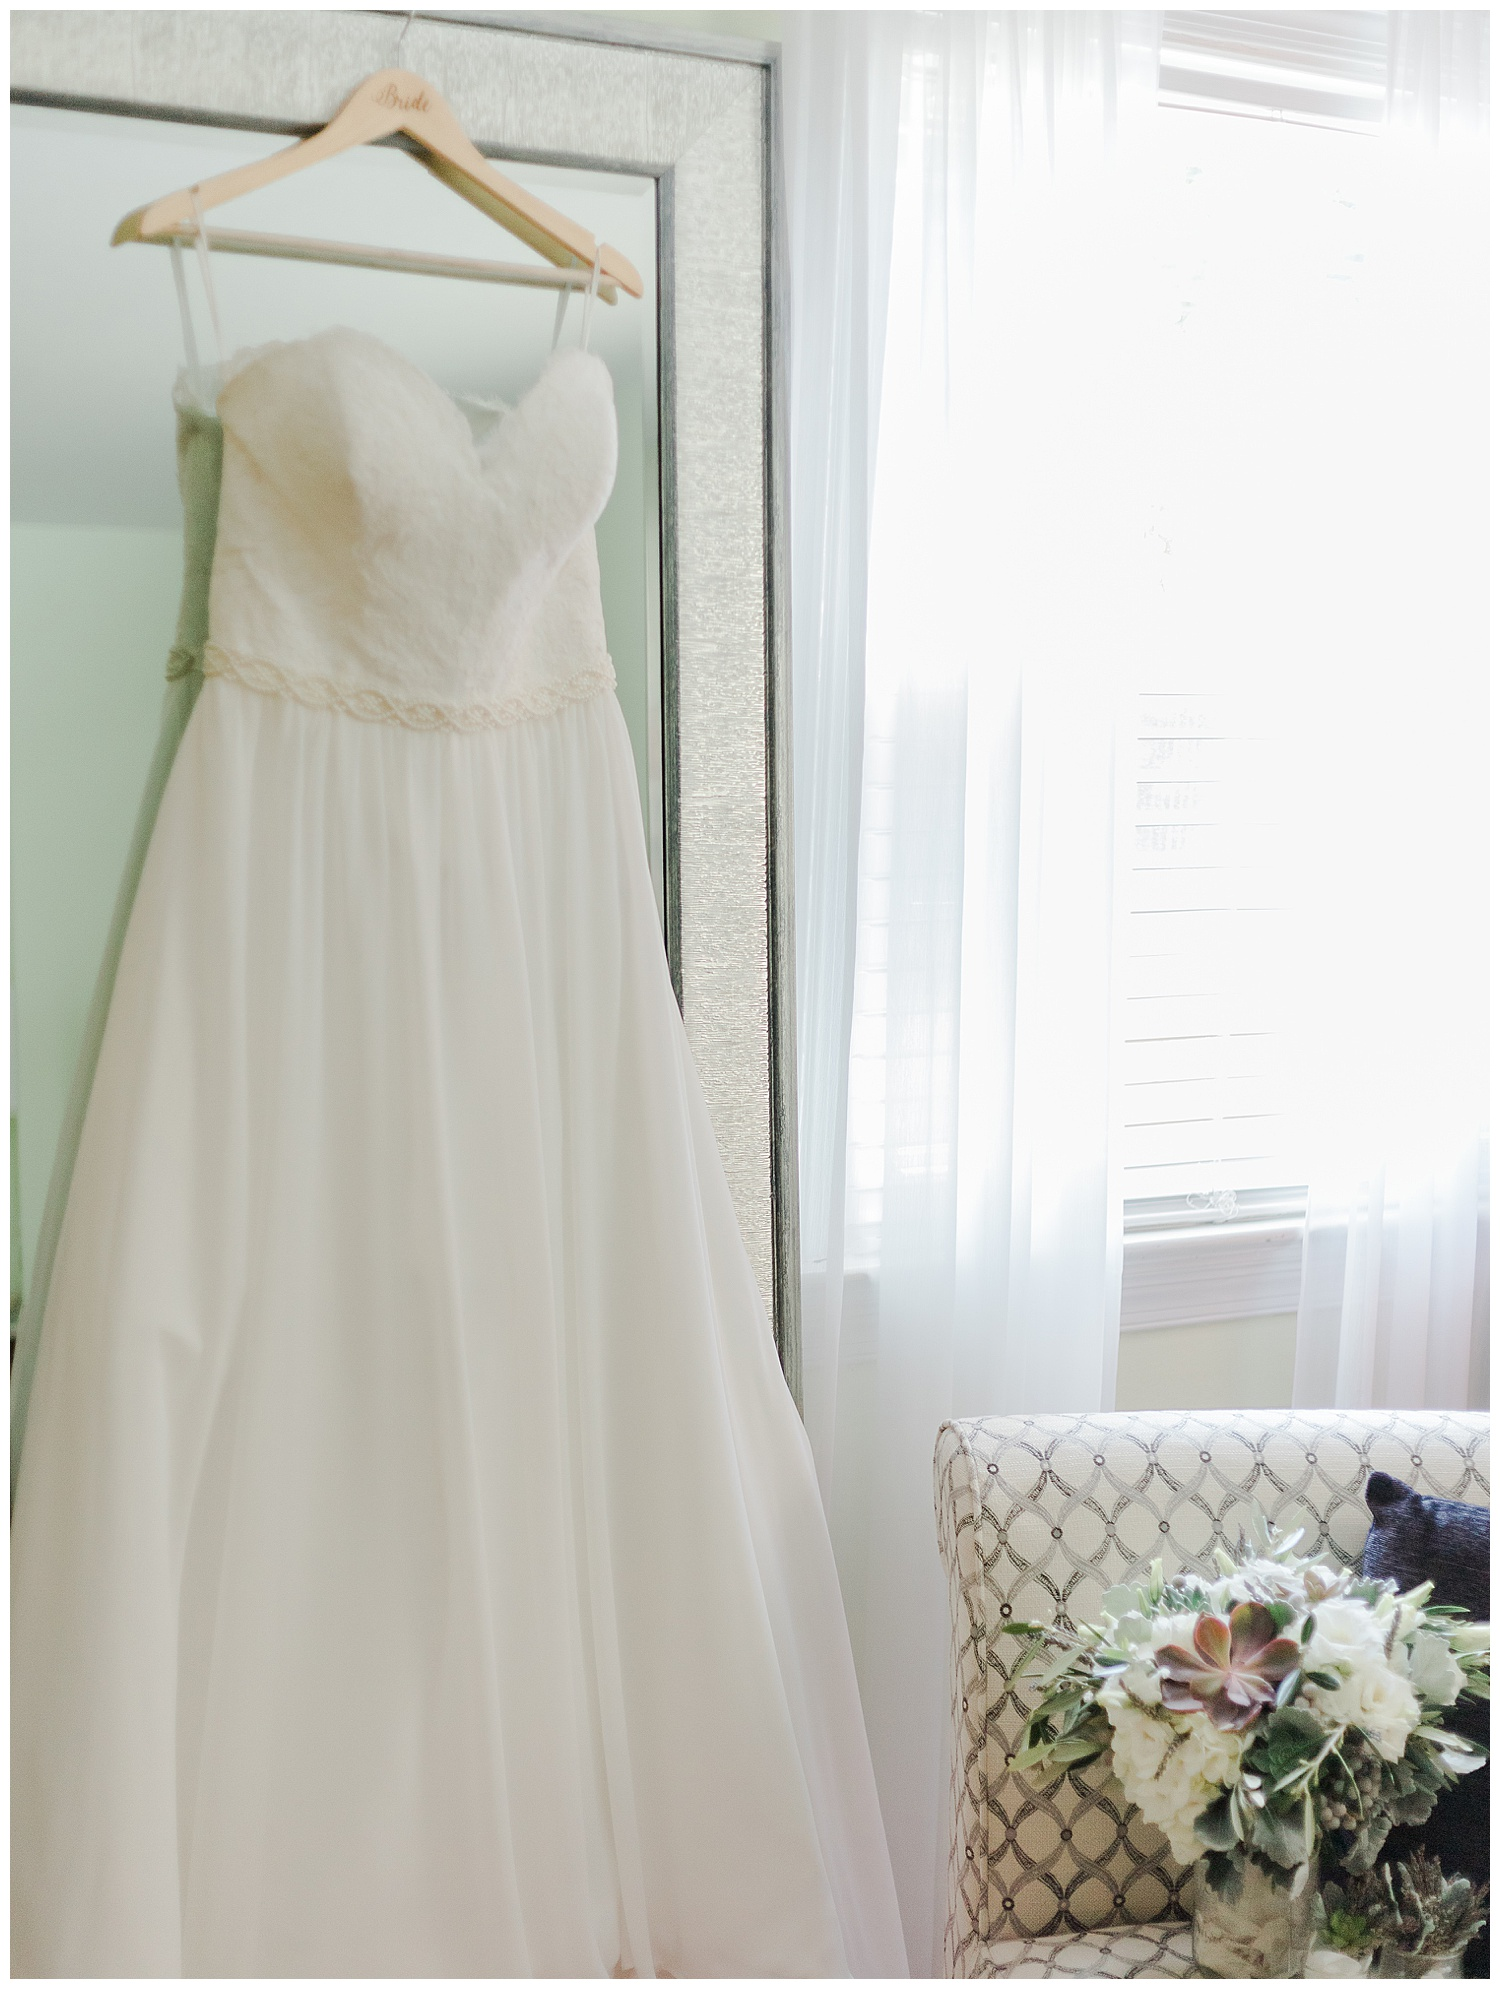 Wedding Gown at Celebrations at the Reservoir